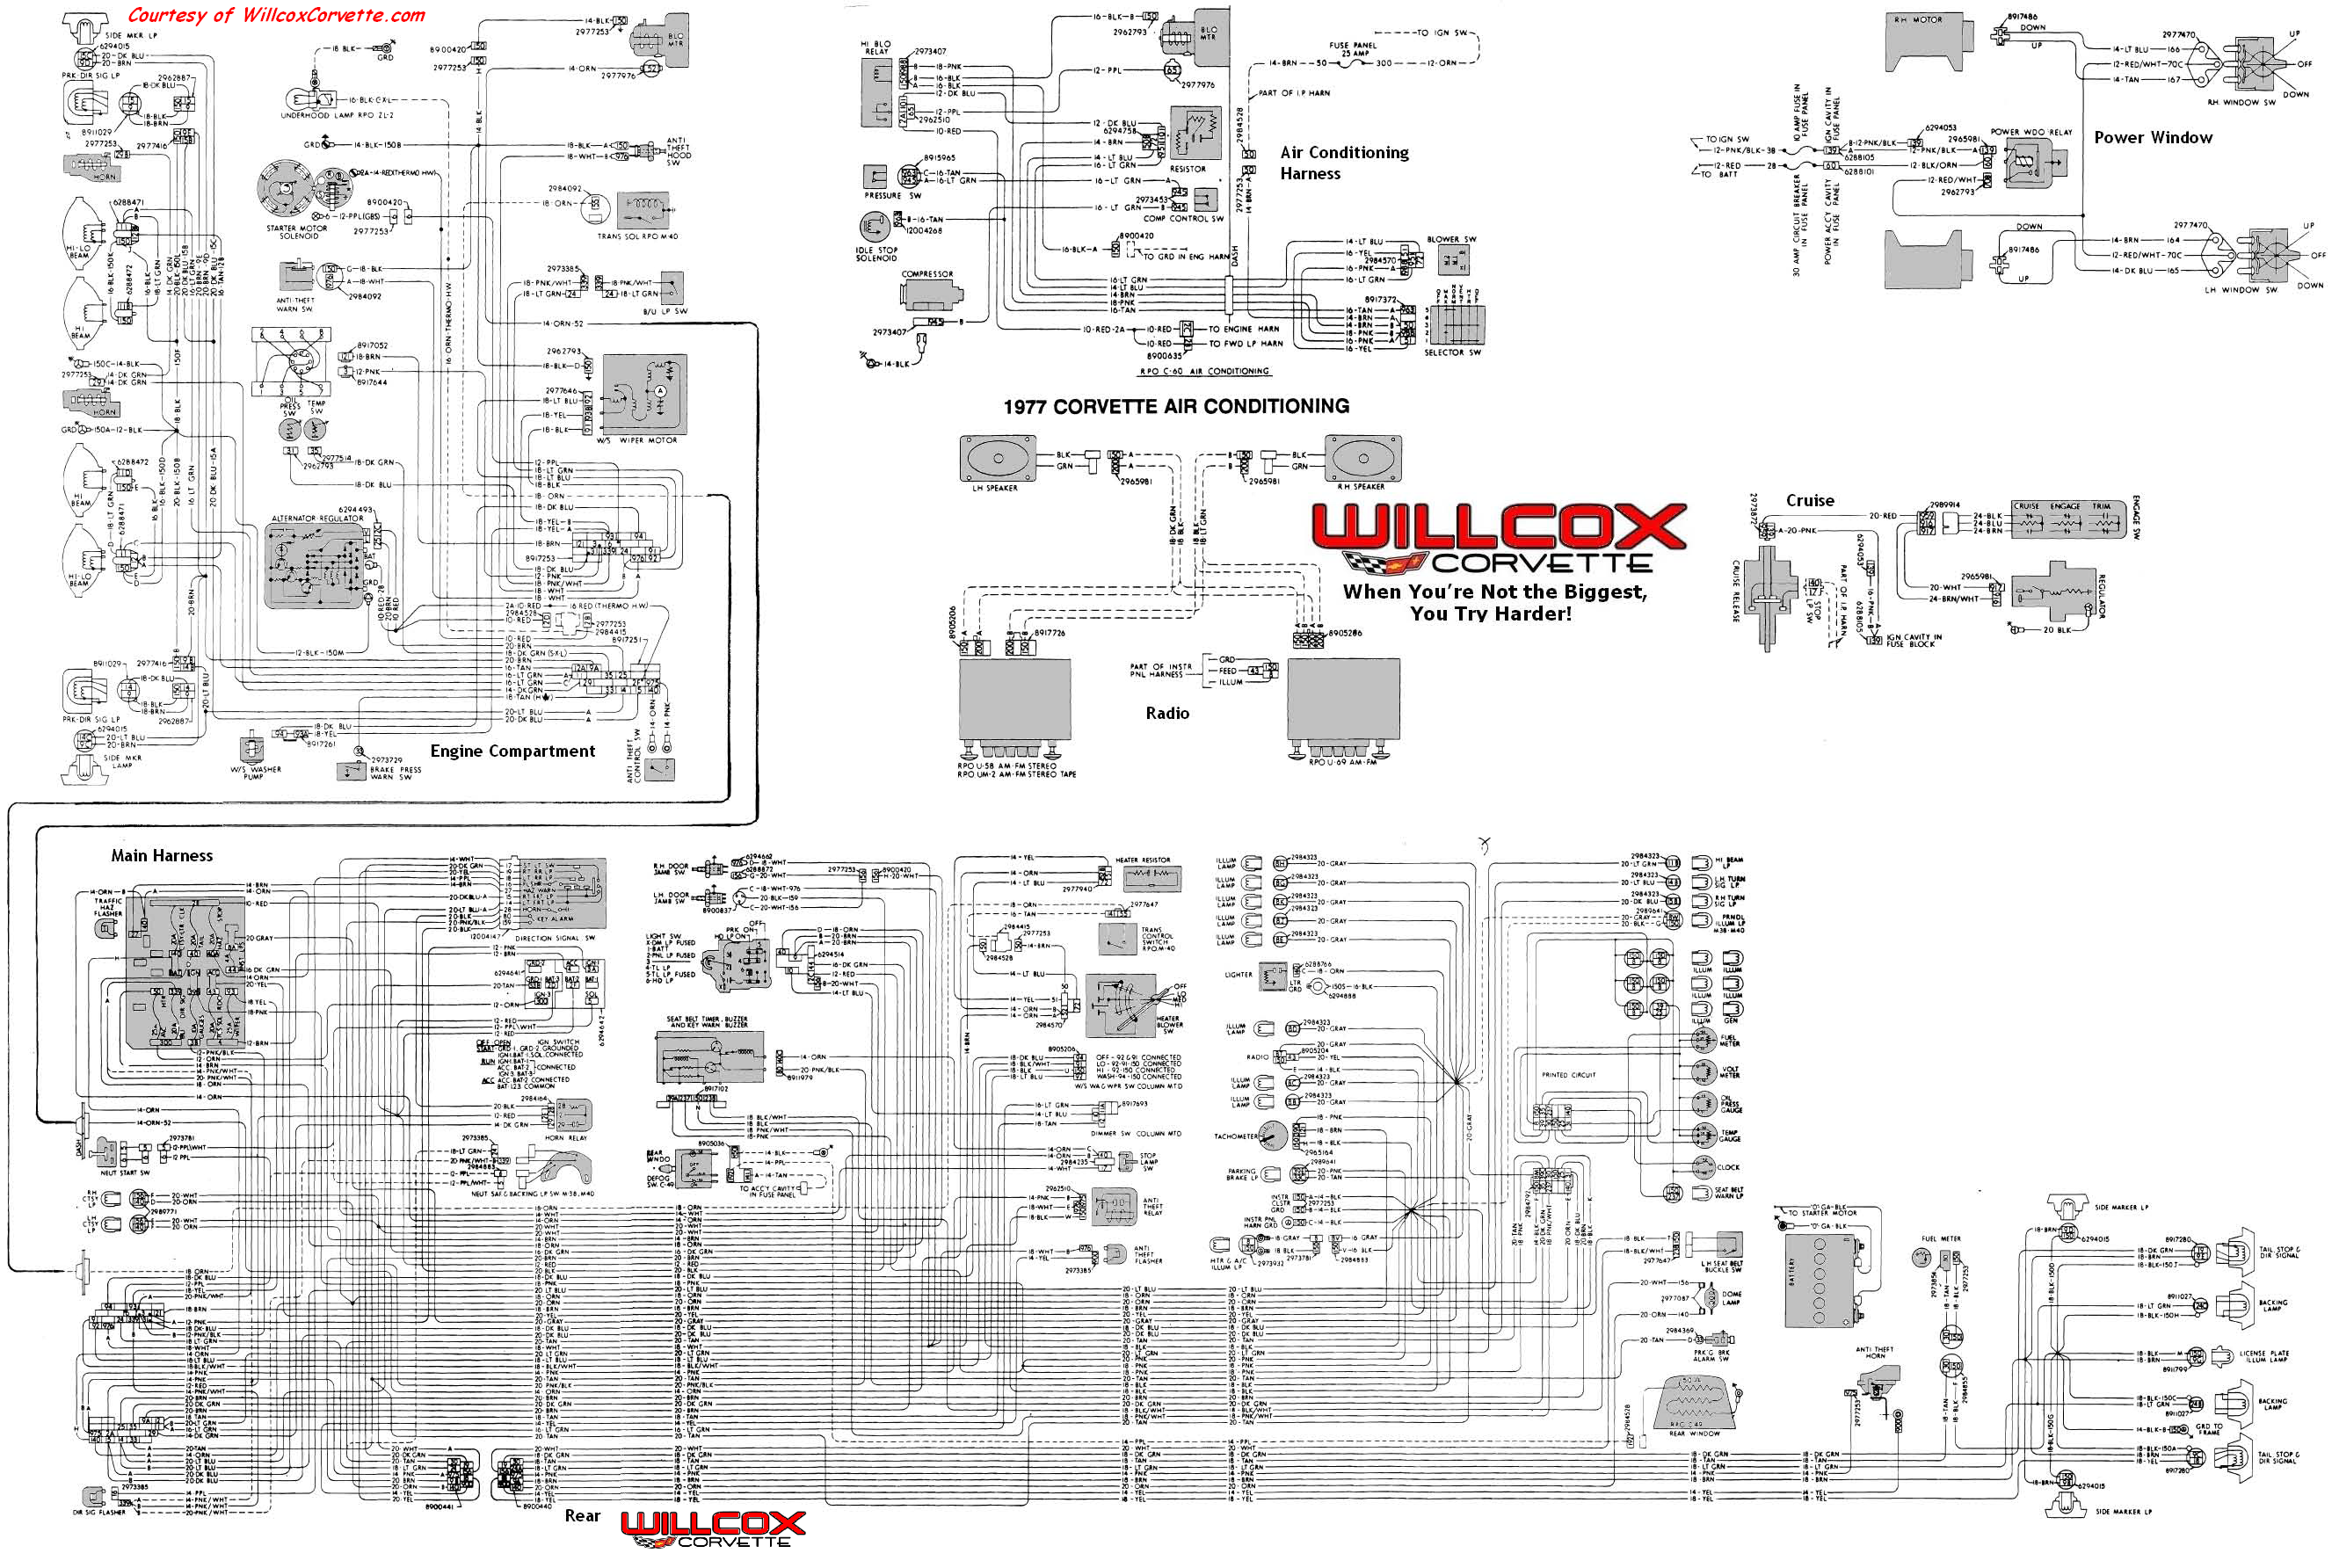 Diagram 2009 Corvette Wiring Diagram Full Version Hd Quality Wiring Diagram Diagramquicken Efran It